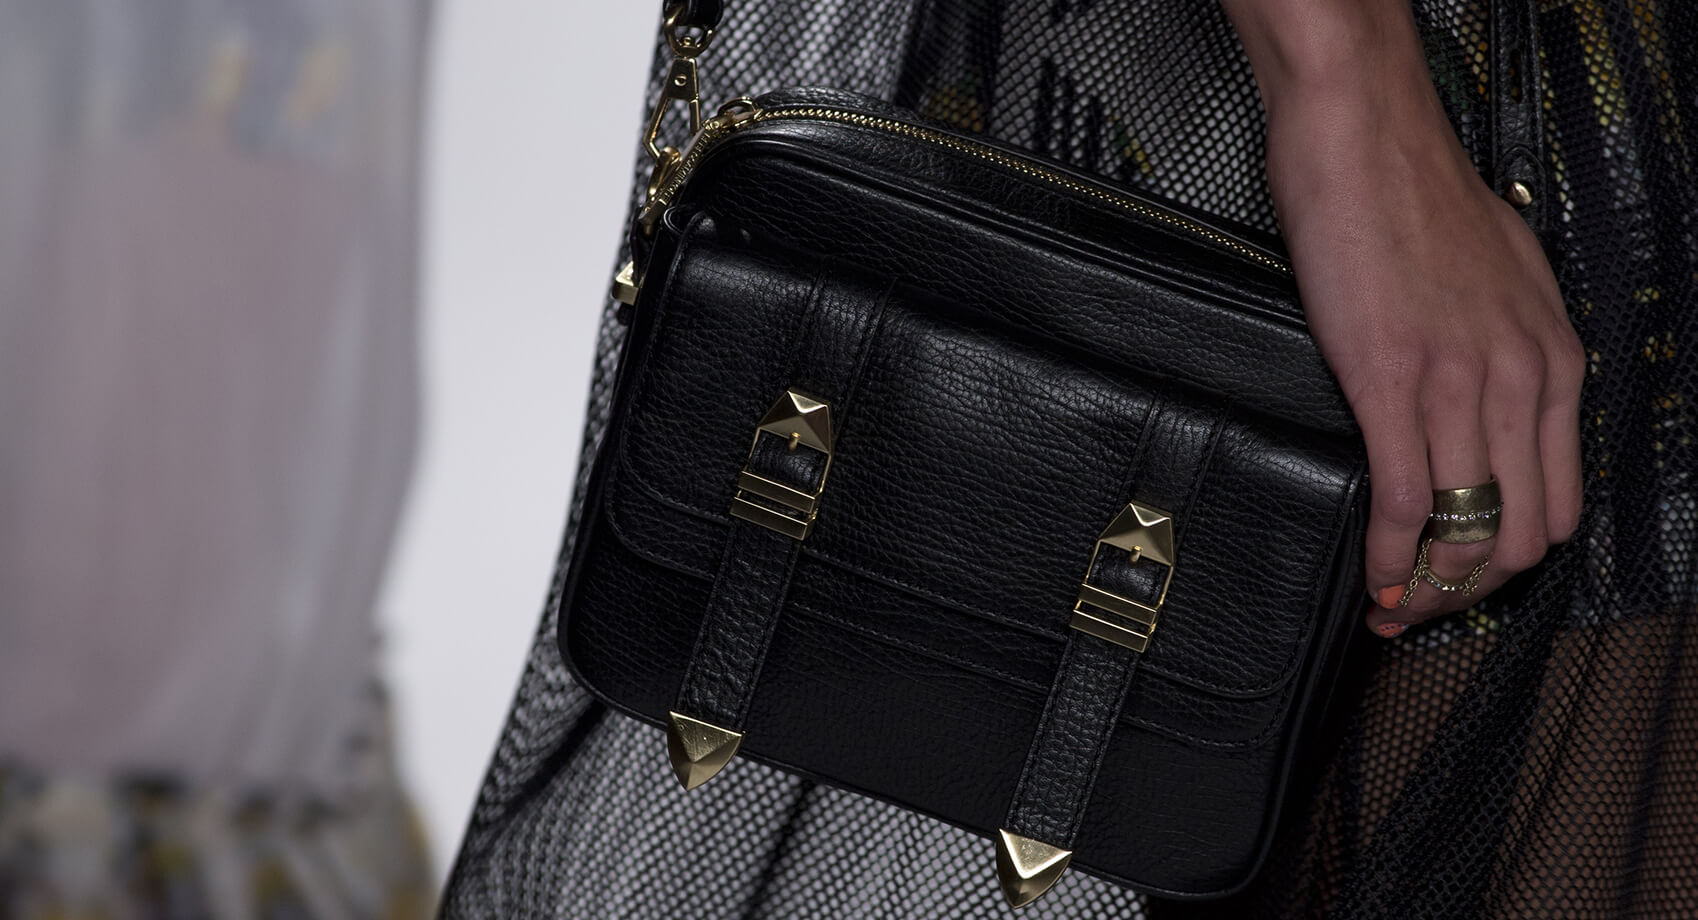 Black leather handbagwith golden buckles